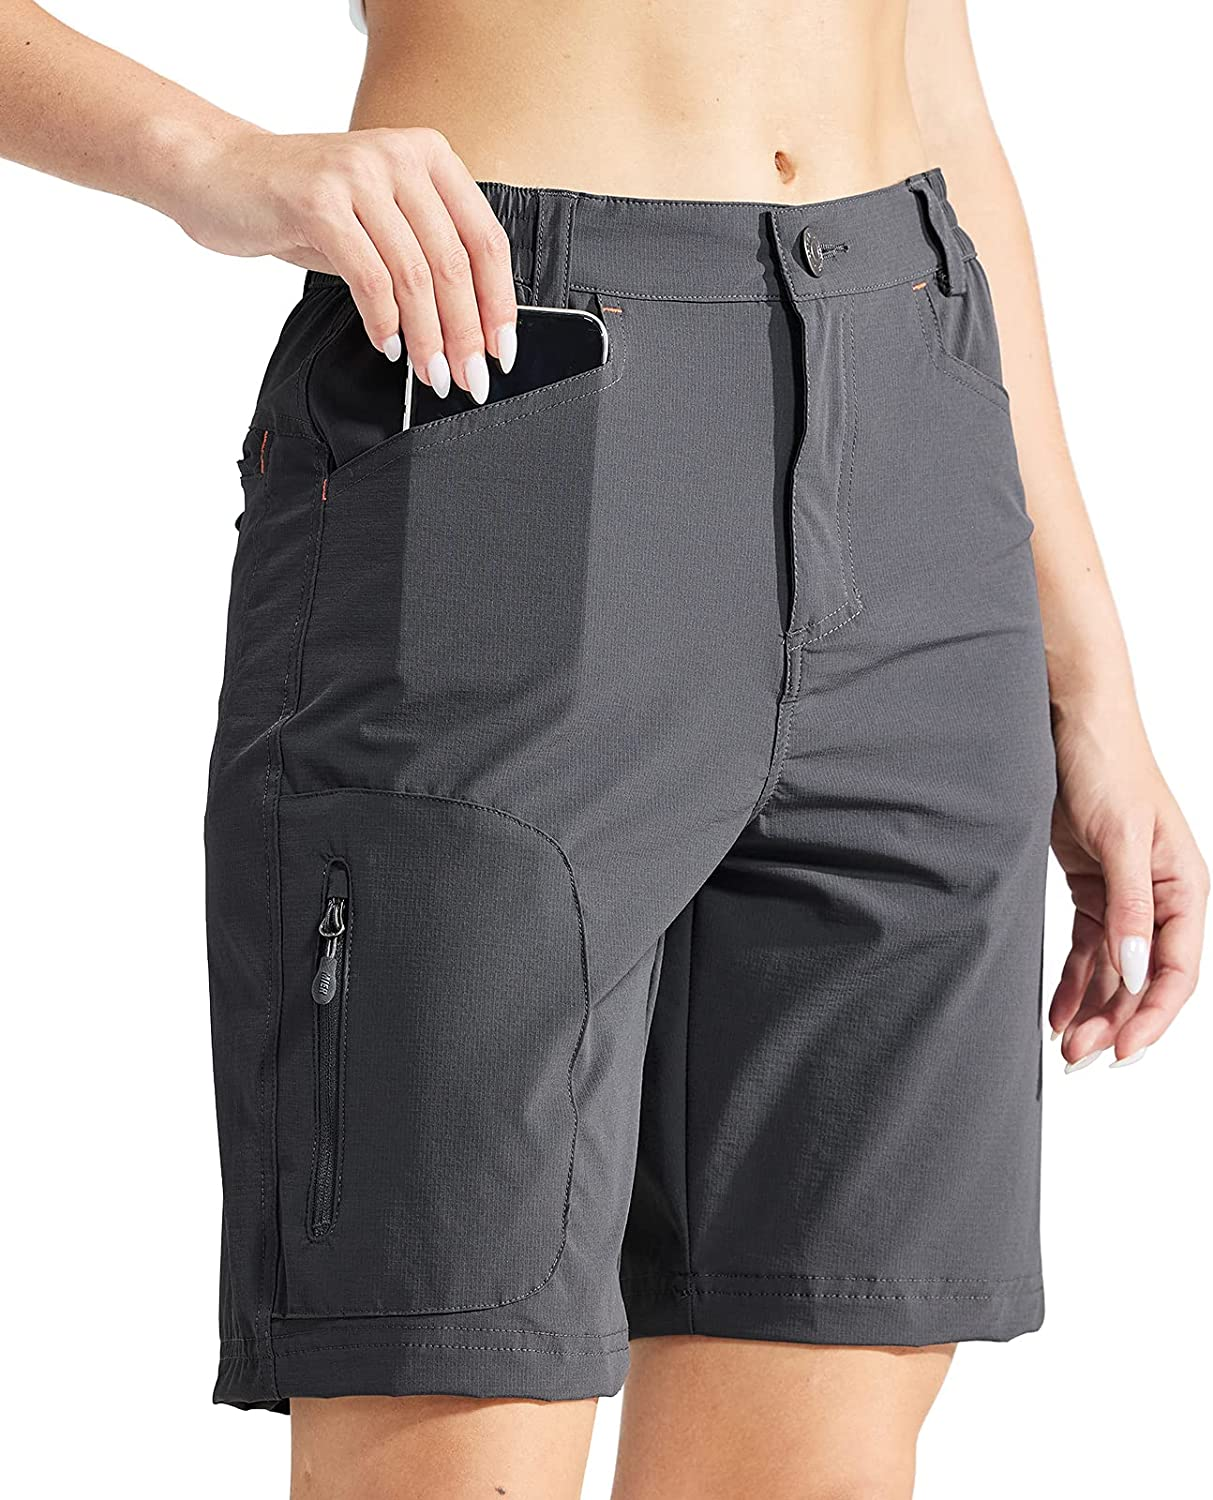 MIER Las Store Vegas Mall Women's Quick Dry Stretchy Shorts Lightweight Travel Hiking